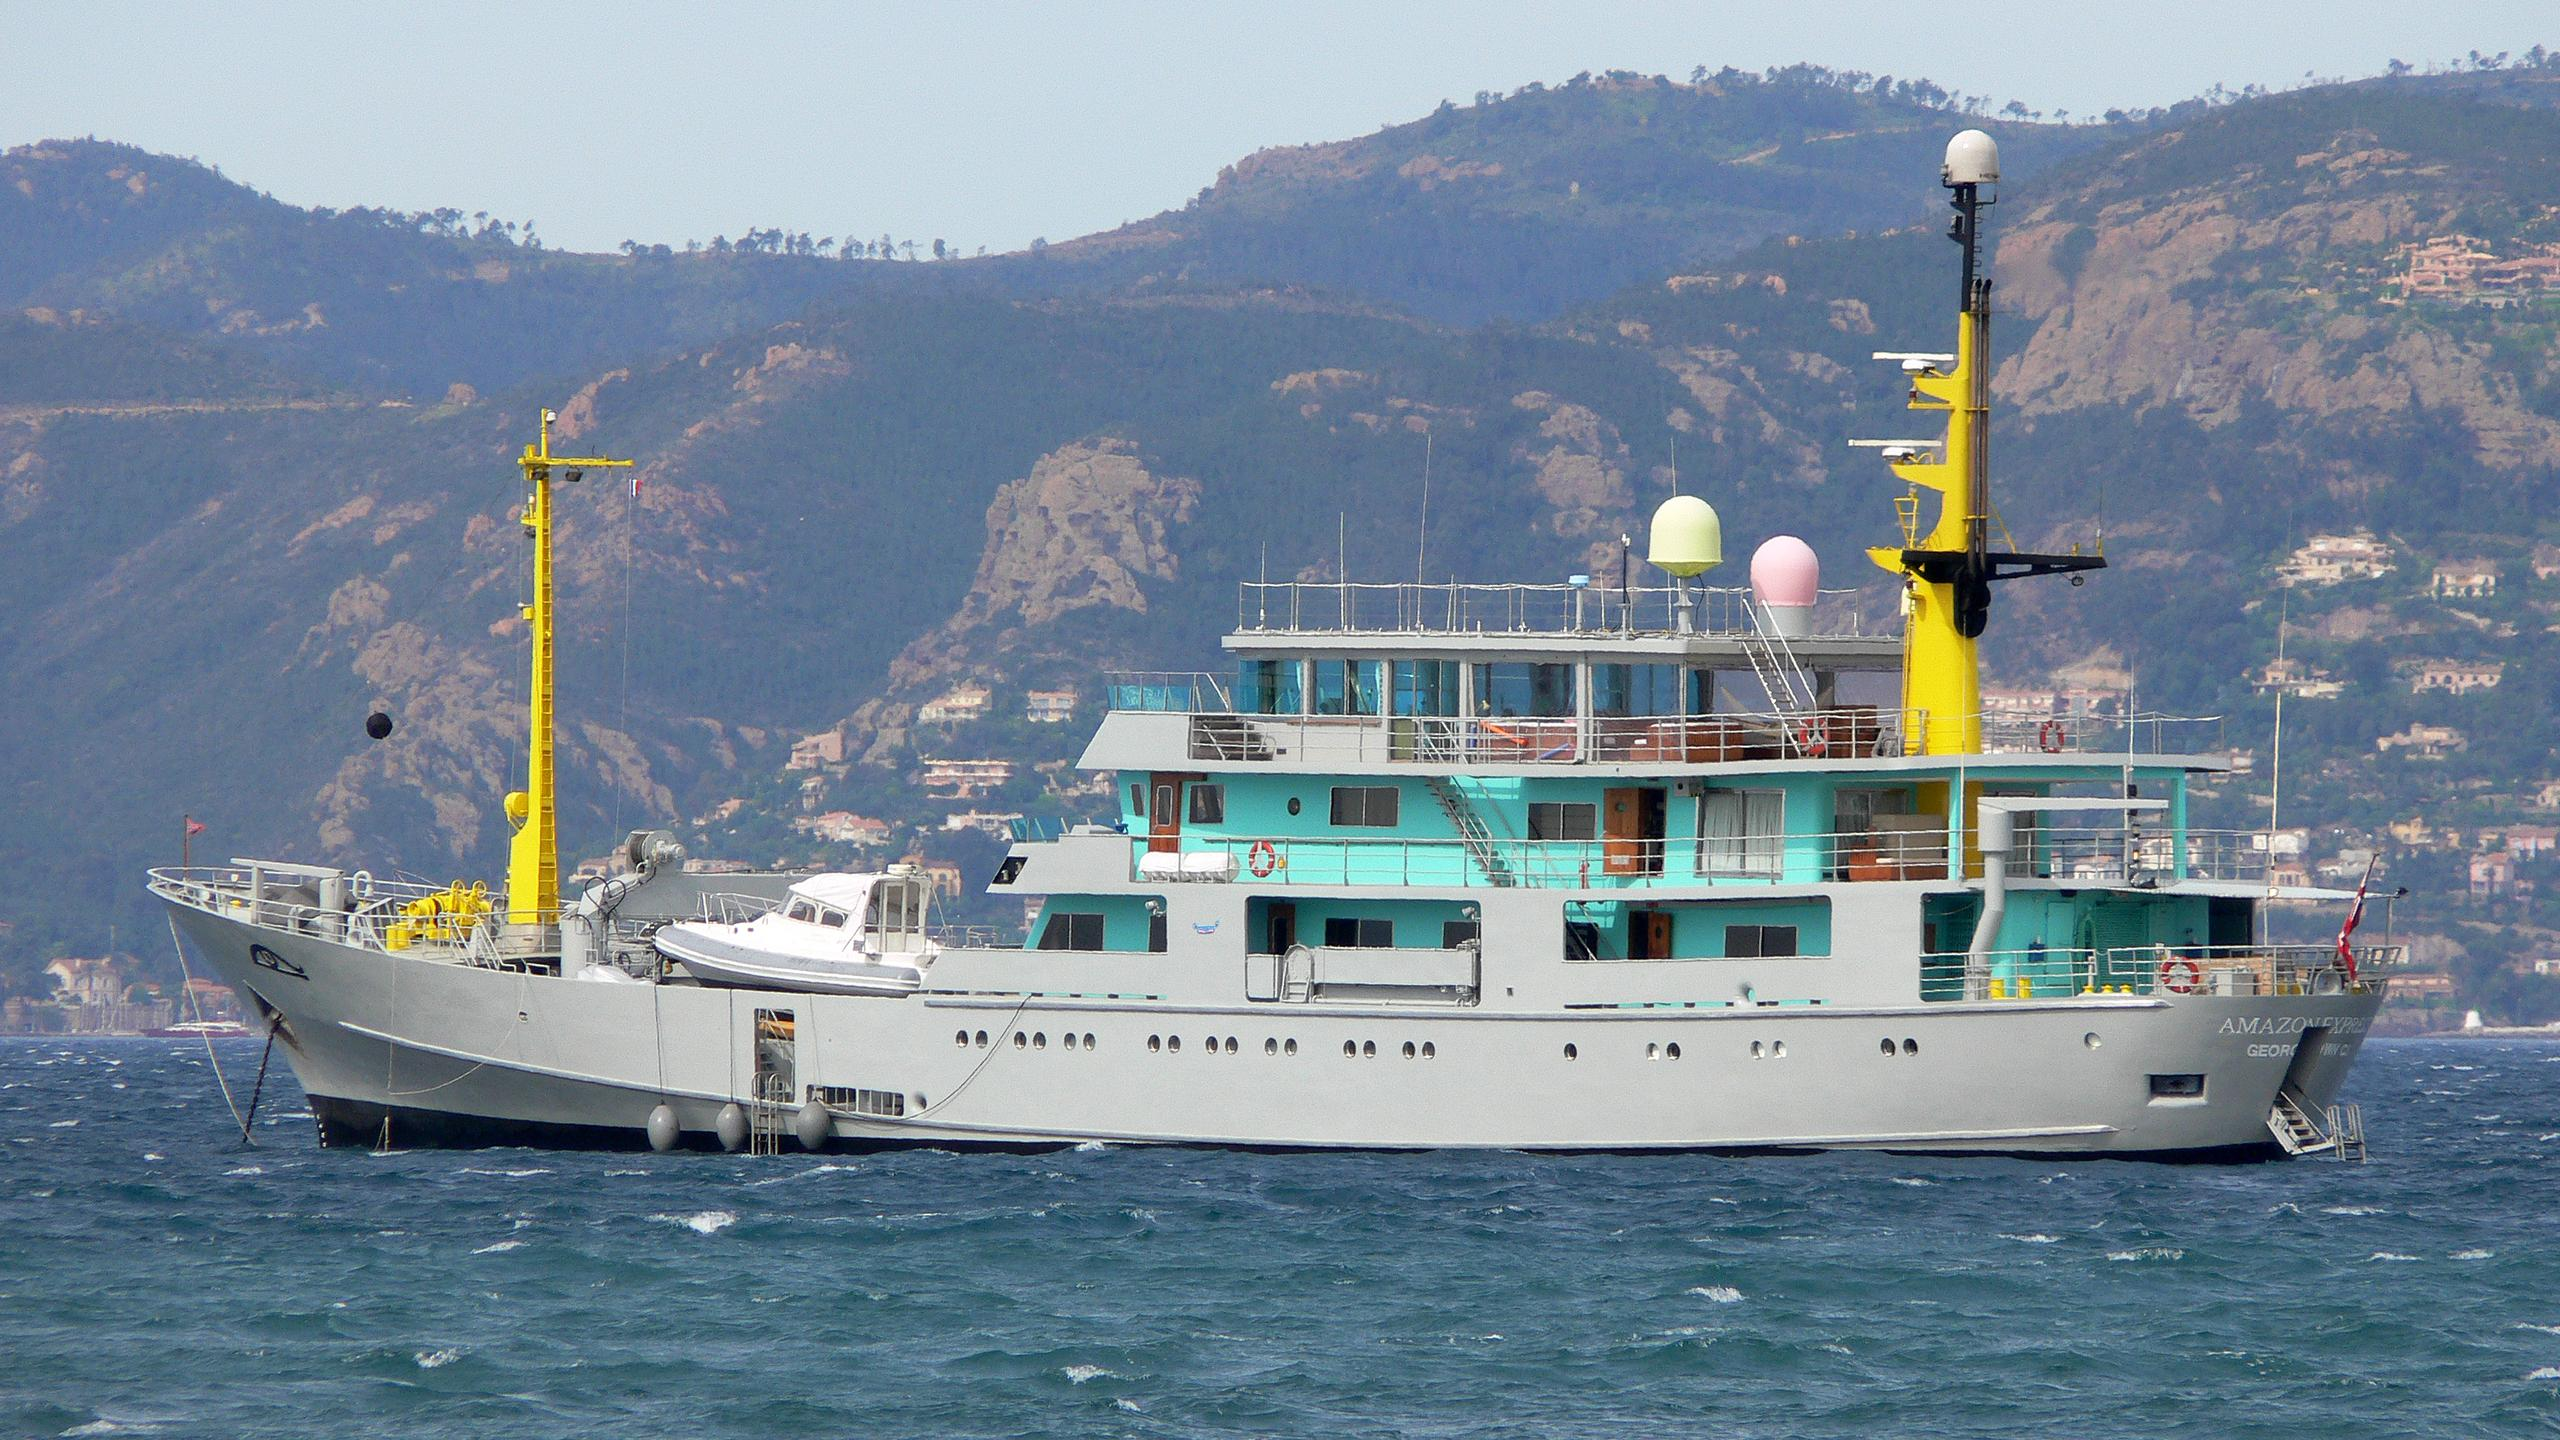 amazon-express-explorer-yacht-arsenale-venice-1966-67m-profile